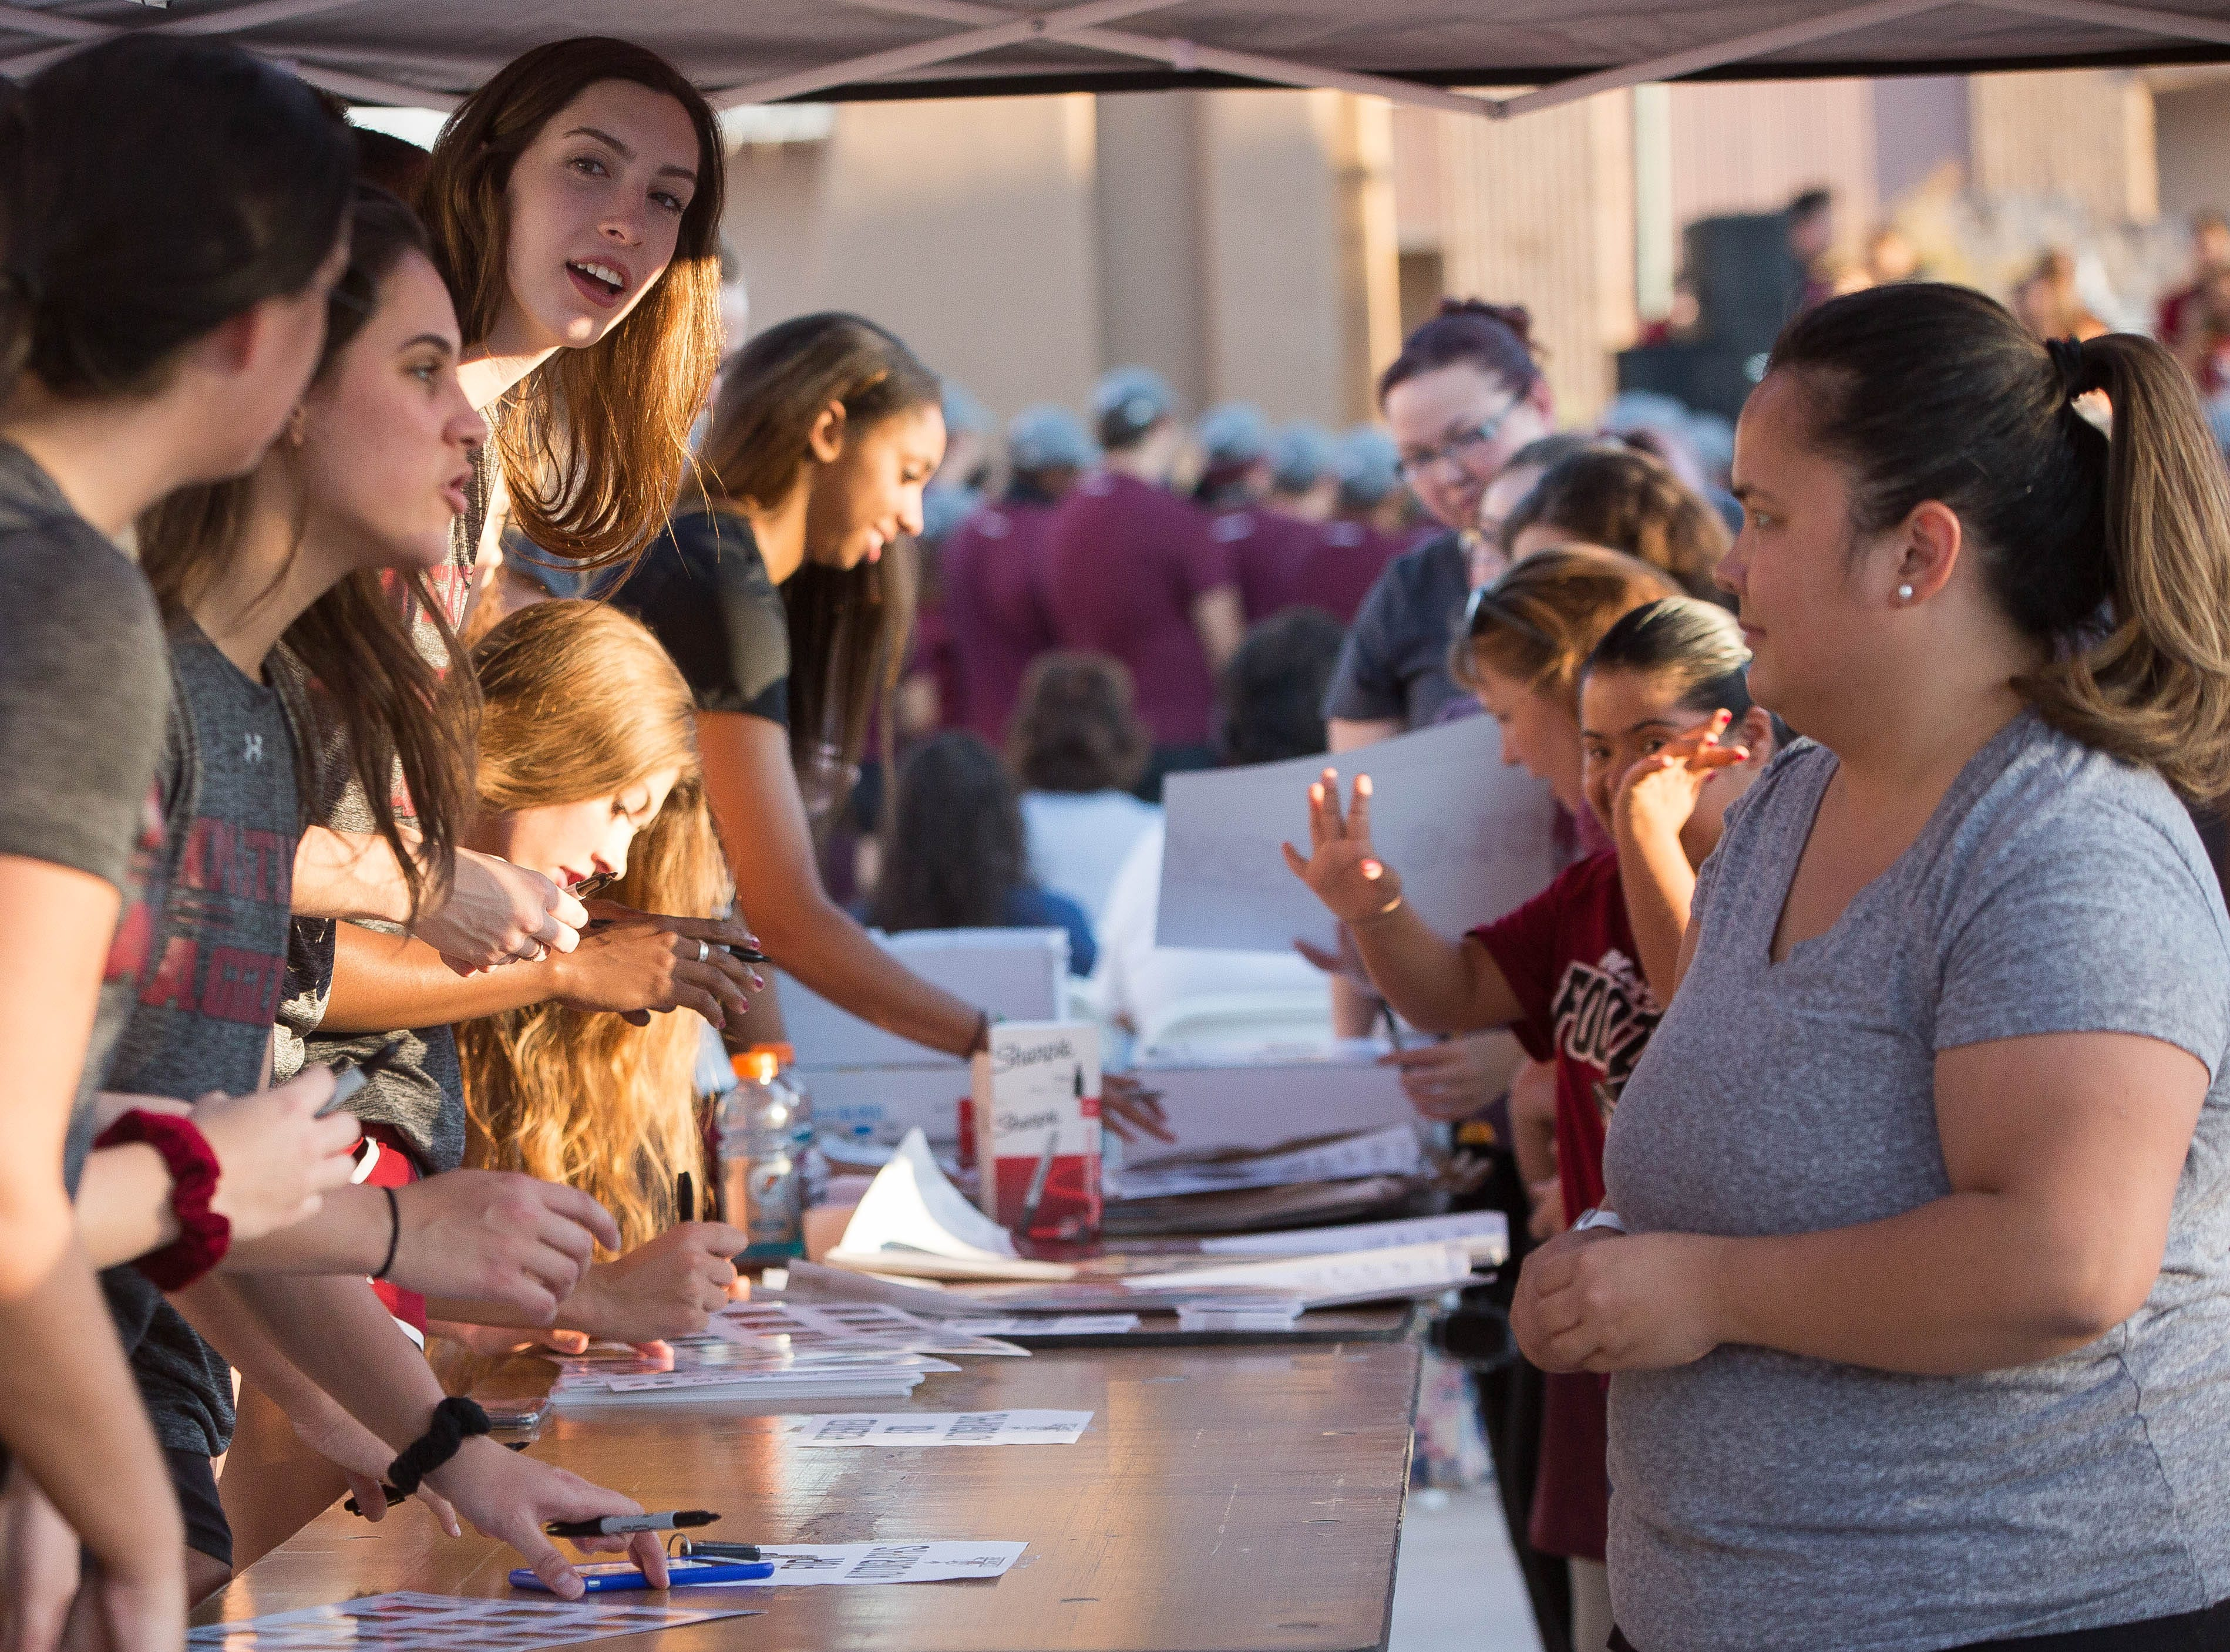 The New Mexico State University Volleyball team signs autographs at the Downtown Aggie Rally, Friday September 28, 2018.